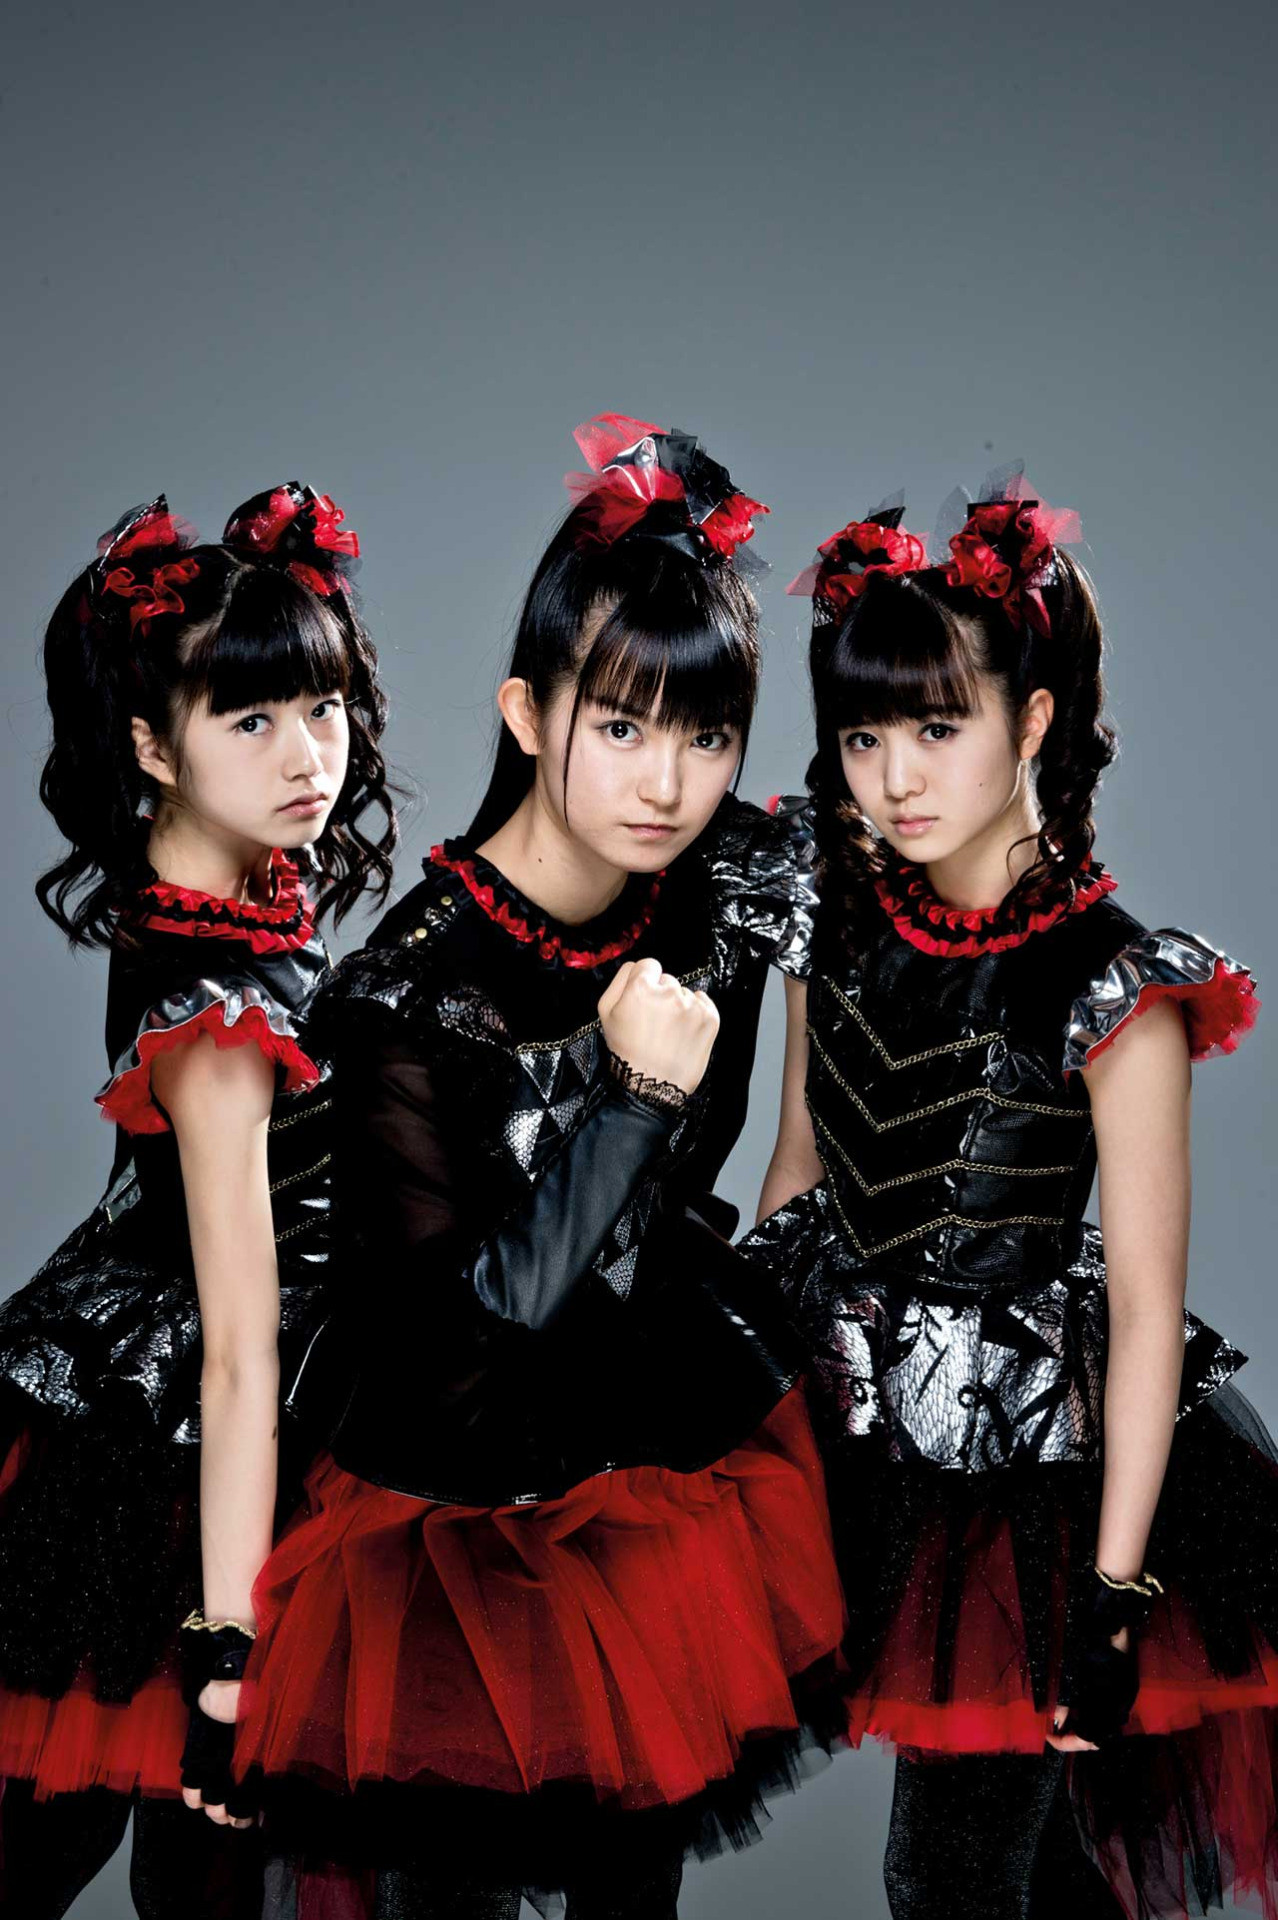 Babymetal… Lord help me, this has to be one of the cutest